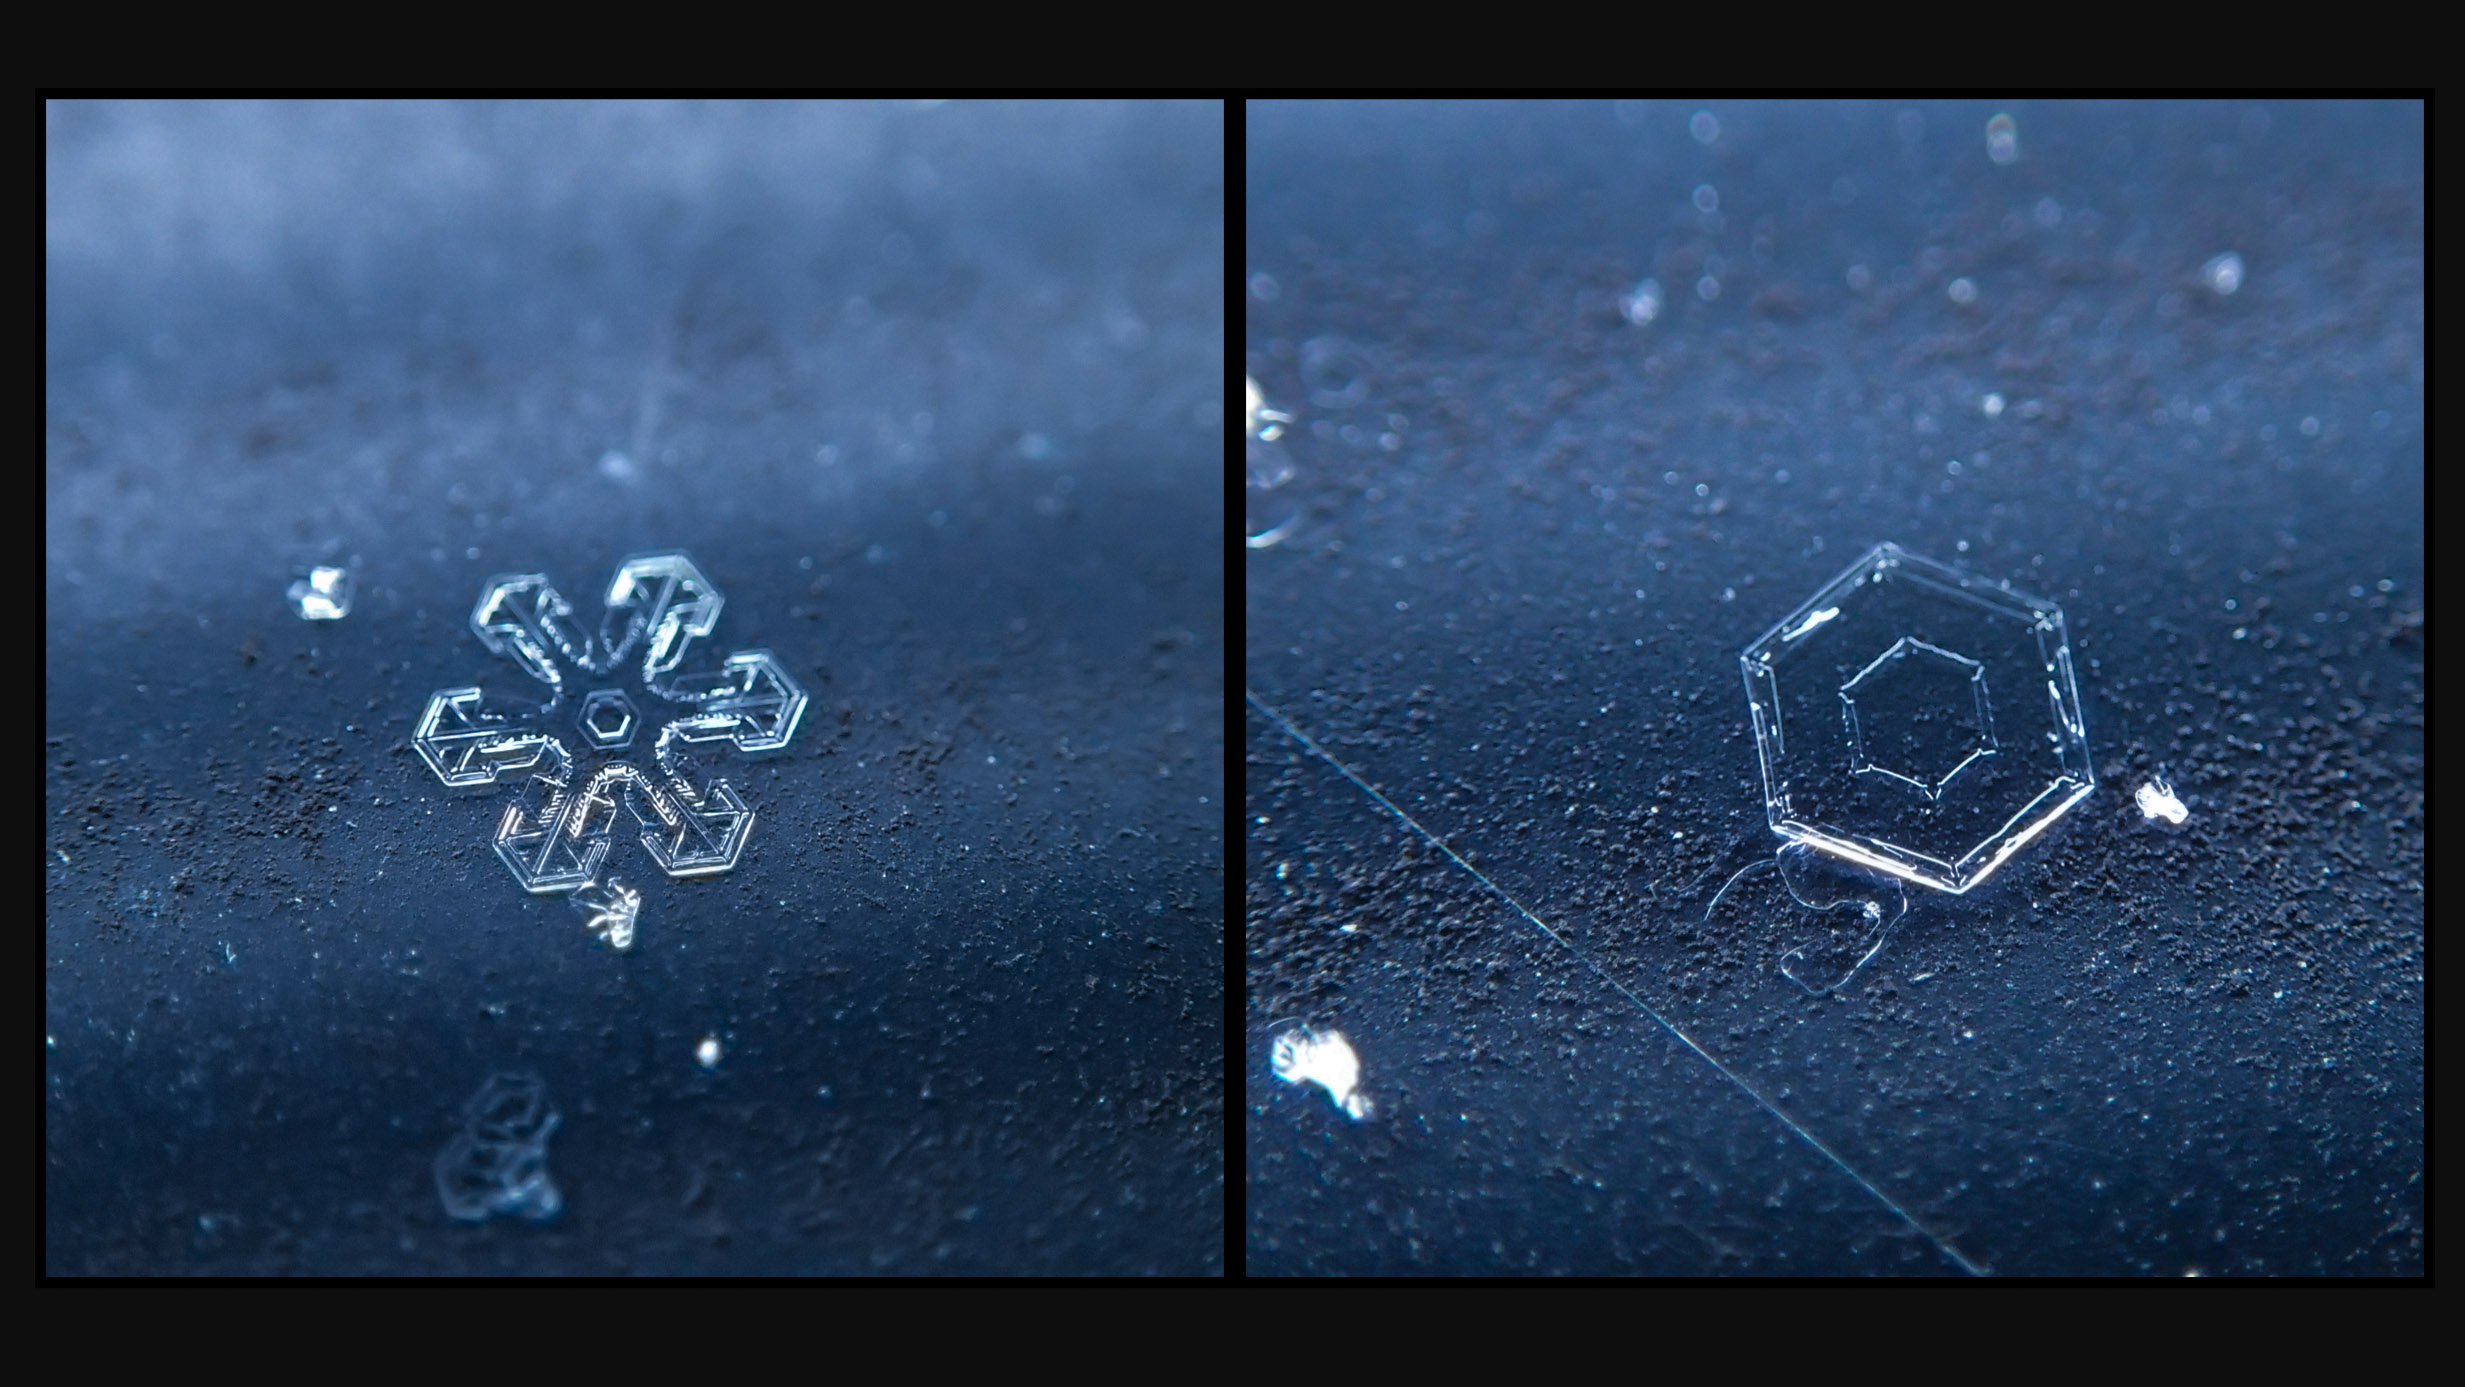 Single snowflakes are incredible at this level. Countless numbers on my car are not as wonderful.